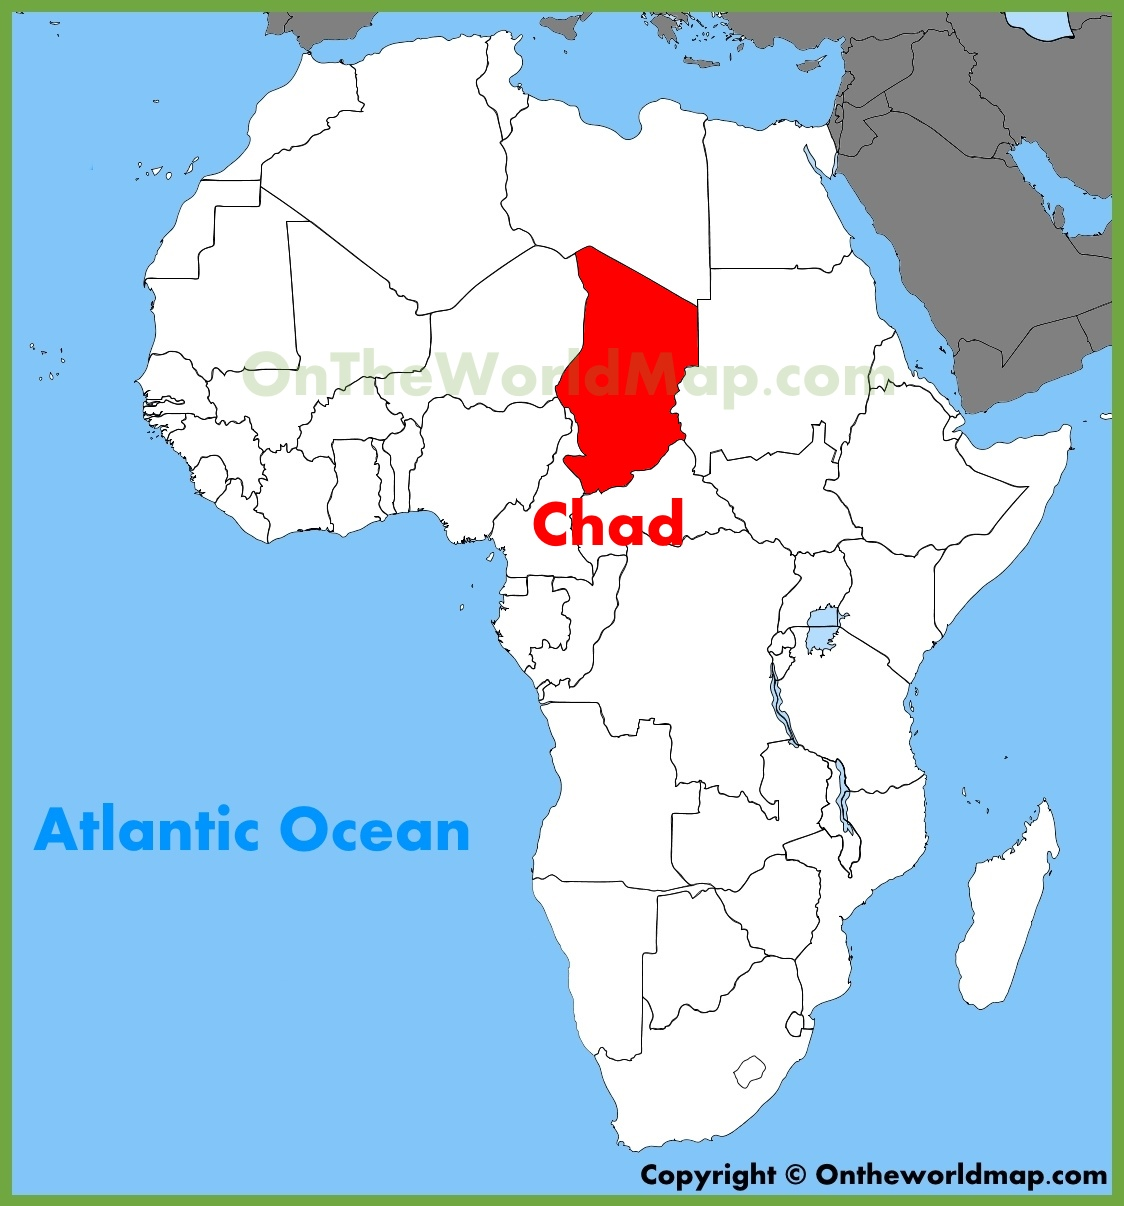 Chad Africa Map Chad location on the Africa map Chad Africa Map